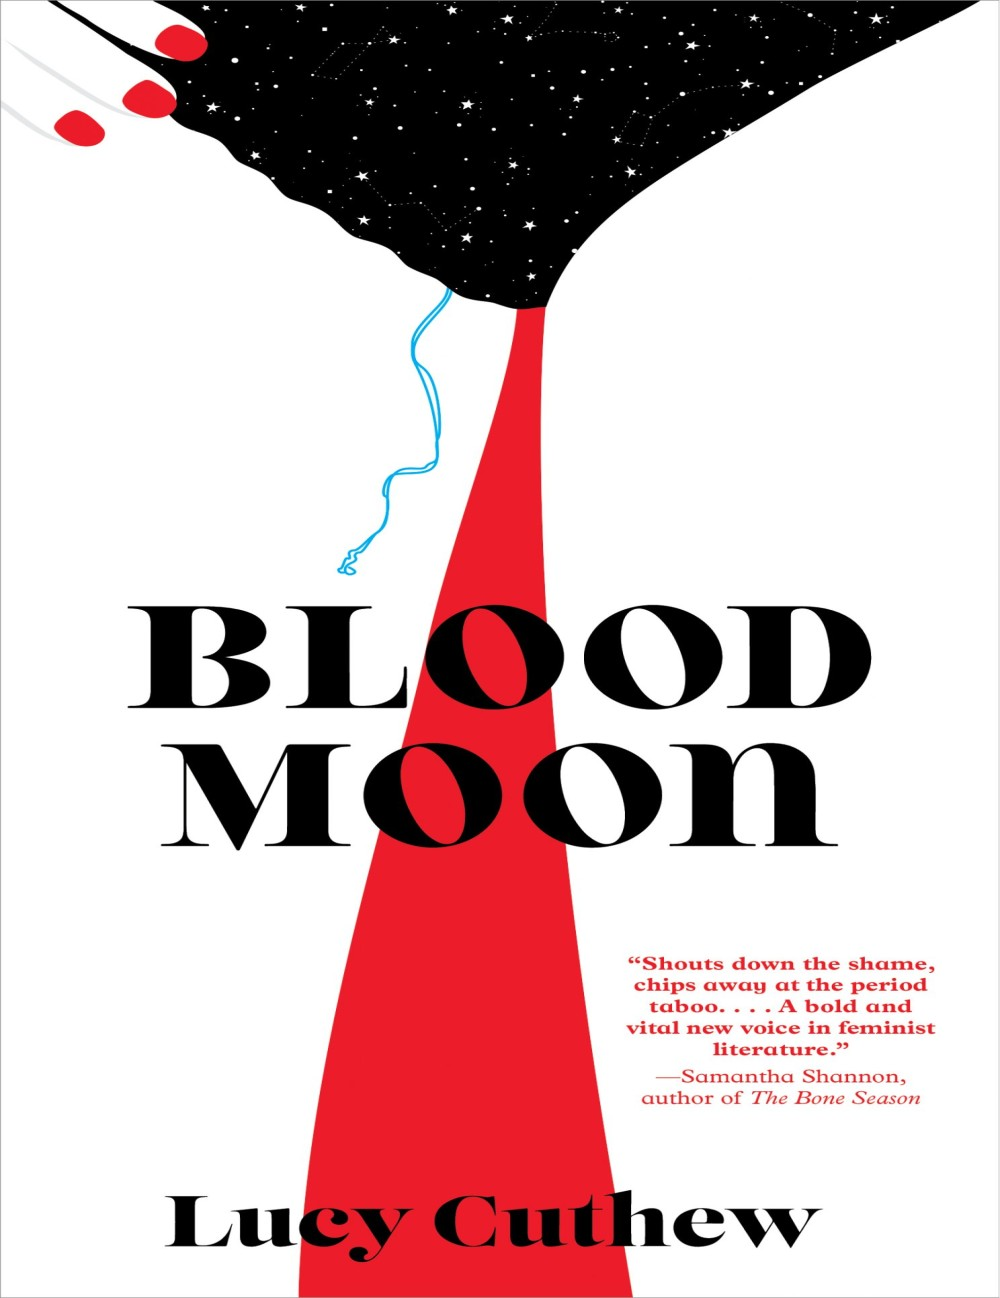 'Blood Moon' by Lucy Cuthew